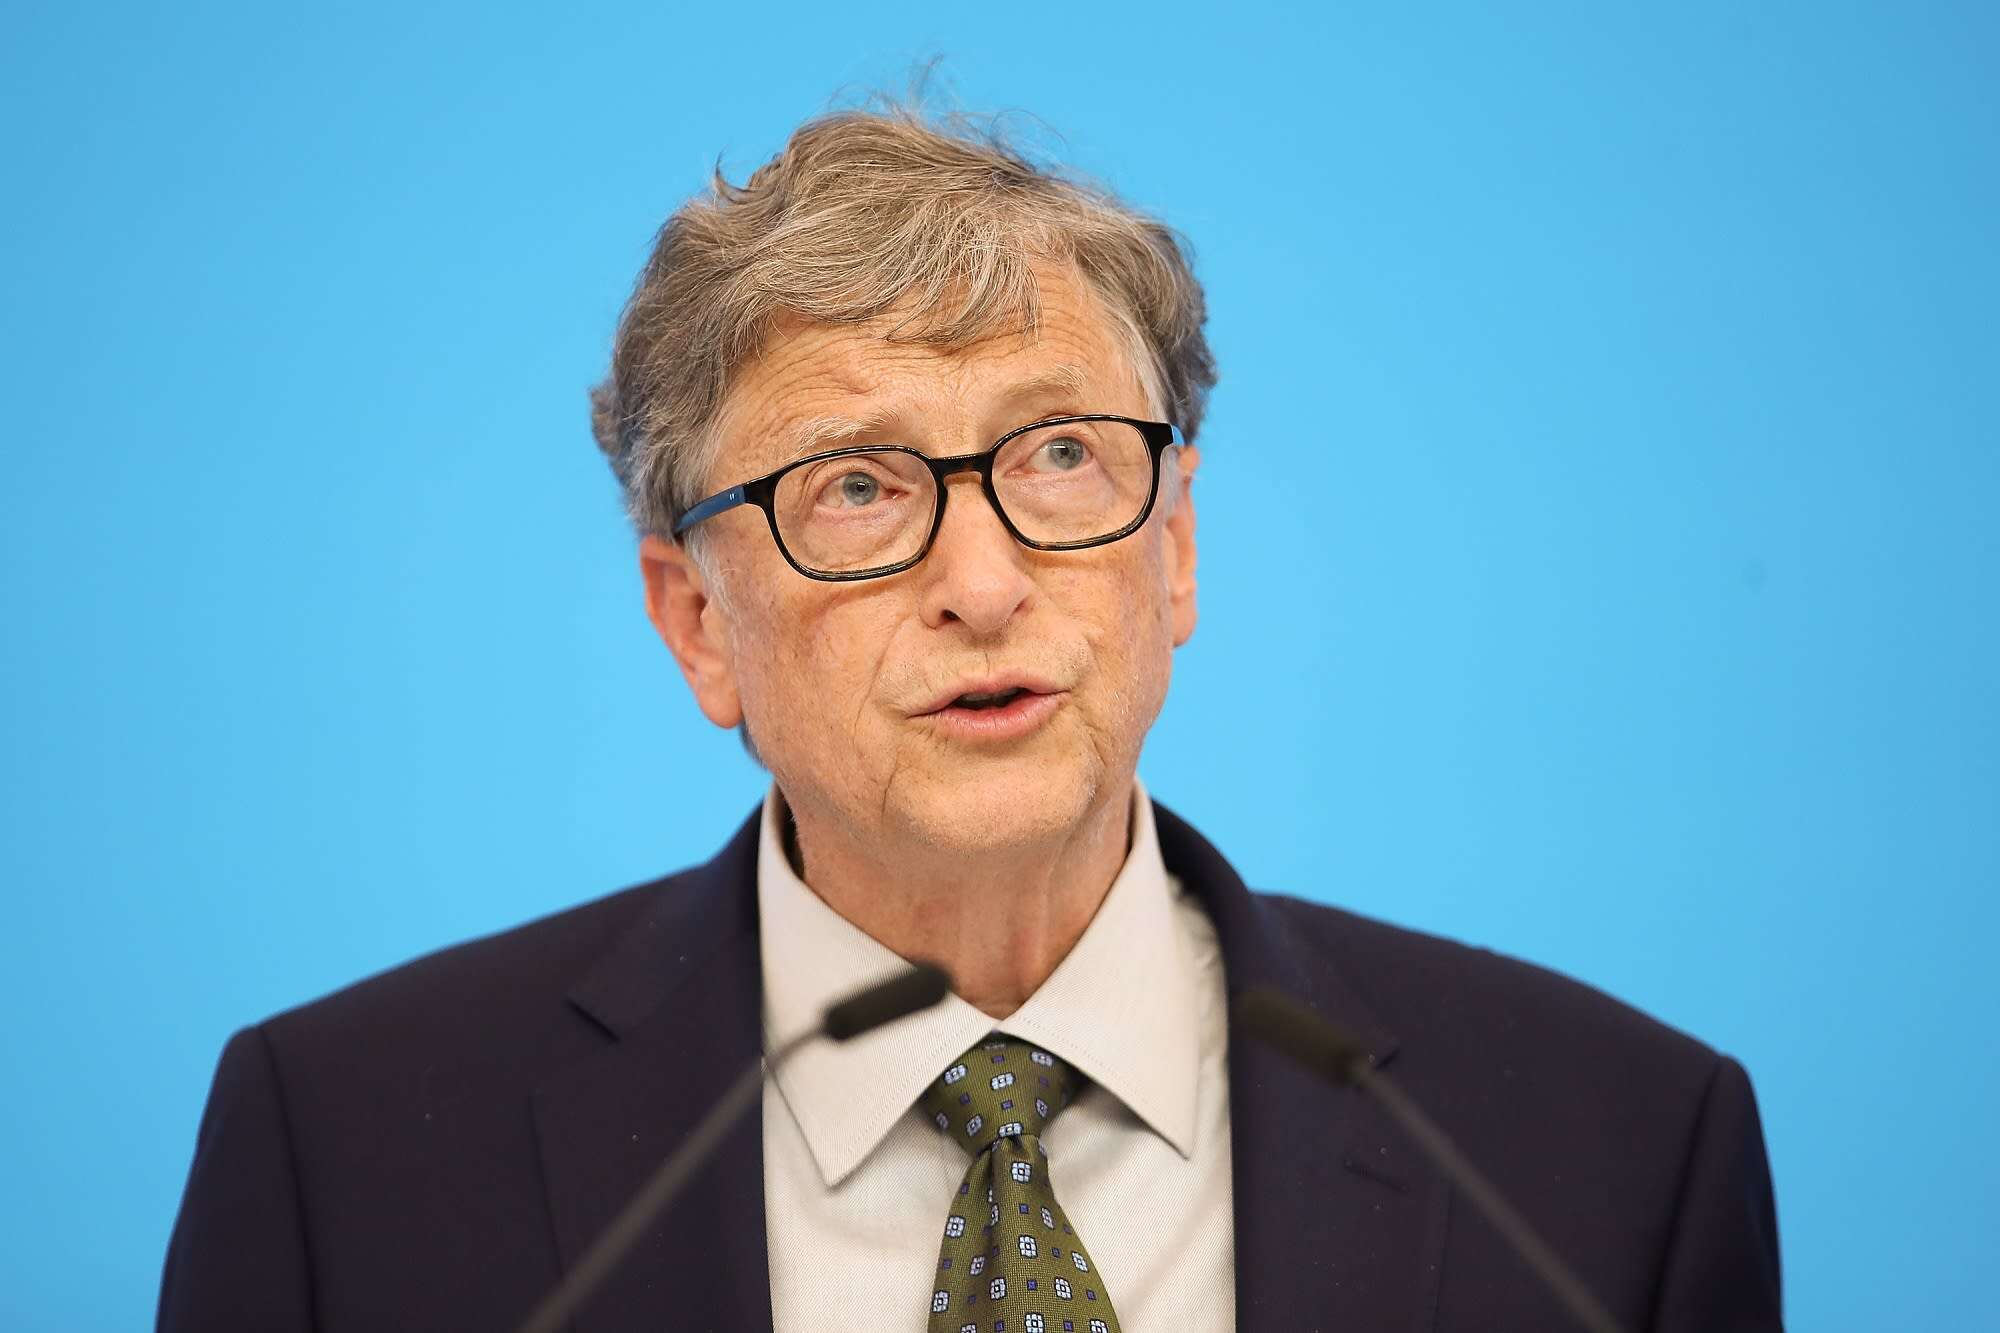 Bill Gates - Coronavirus Vaccine Will Work Well In Africa